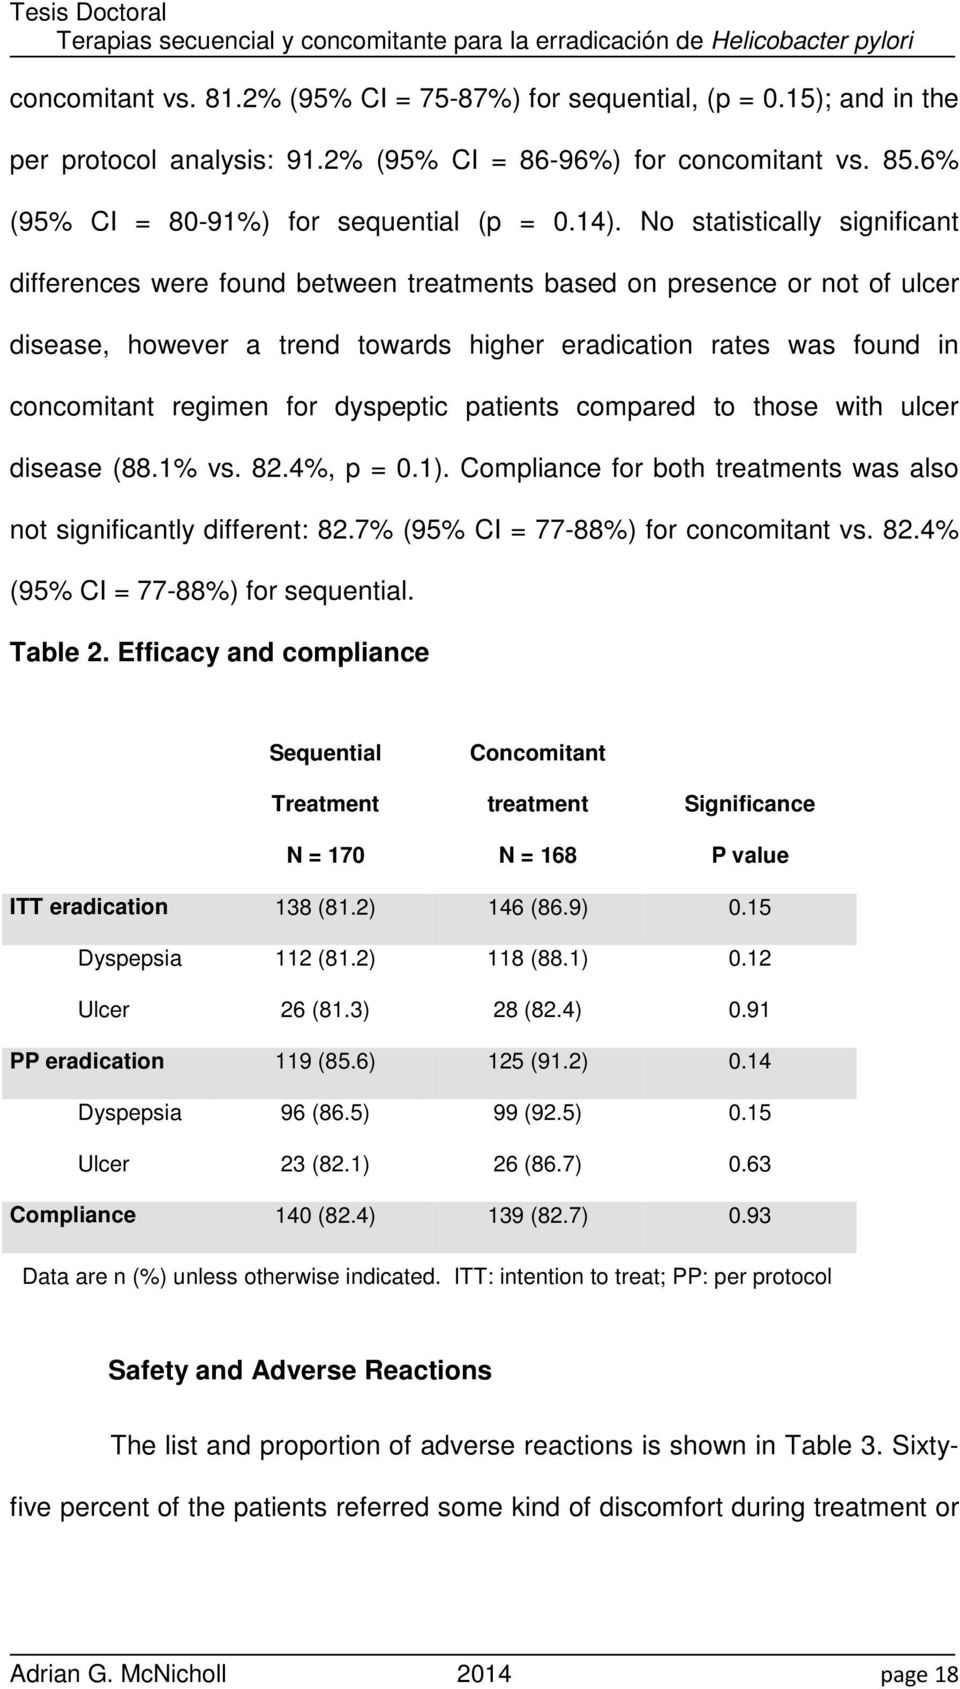 dyspeptic patients compared to those with ulcer disease (88.1% vs. 82.4%, p = 0.1). Compliance for both treatments was also not significantly different: 82.7% (95% CI = 77-88%) for concomitant vs. 82.4% (95% CI = 77-88%) for sequential.